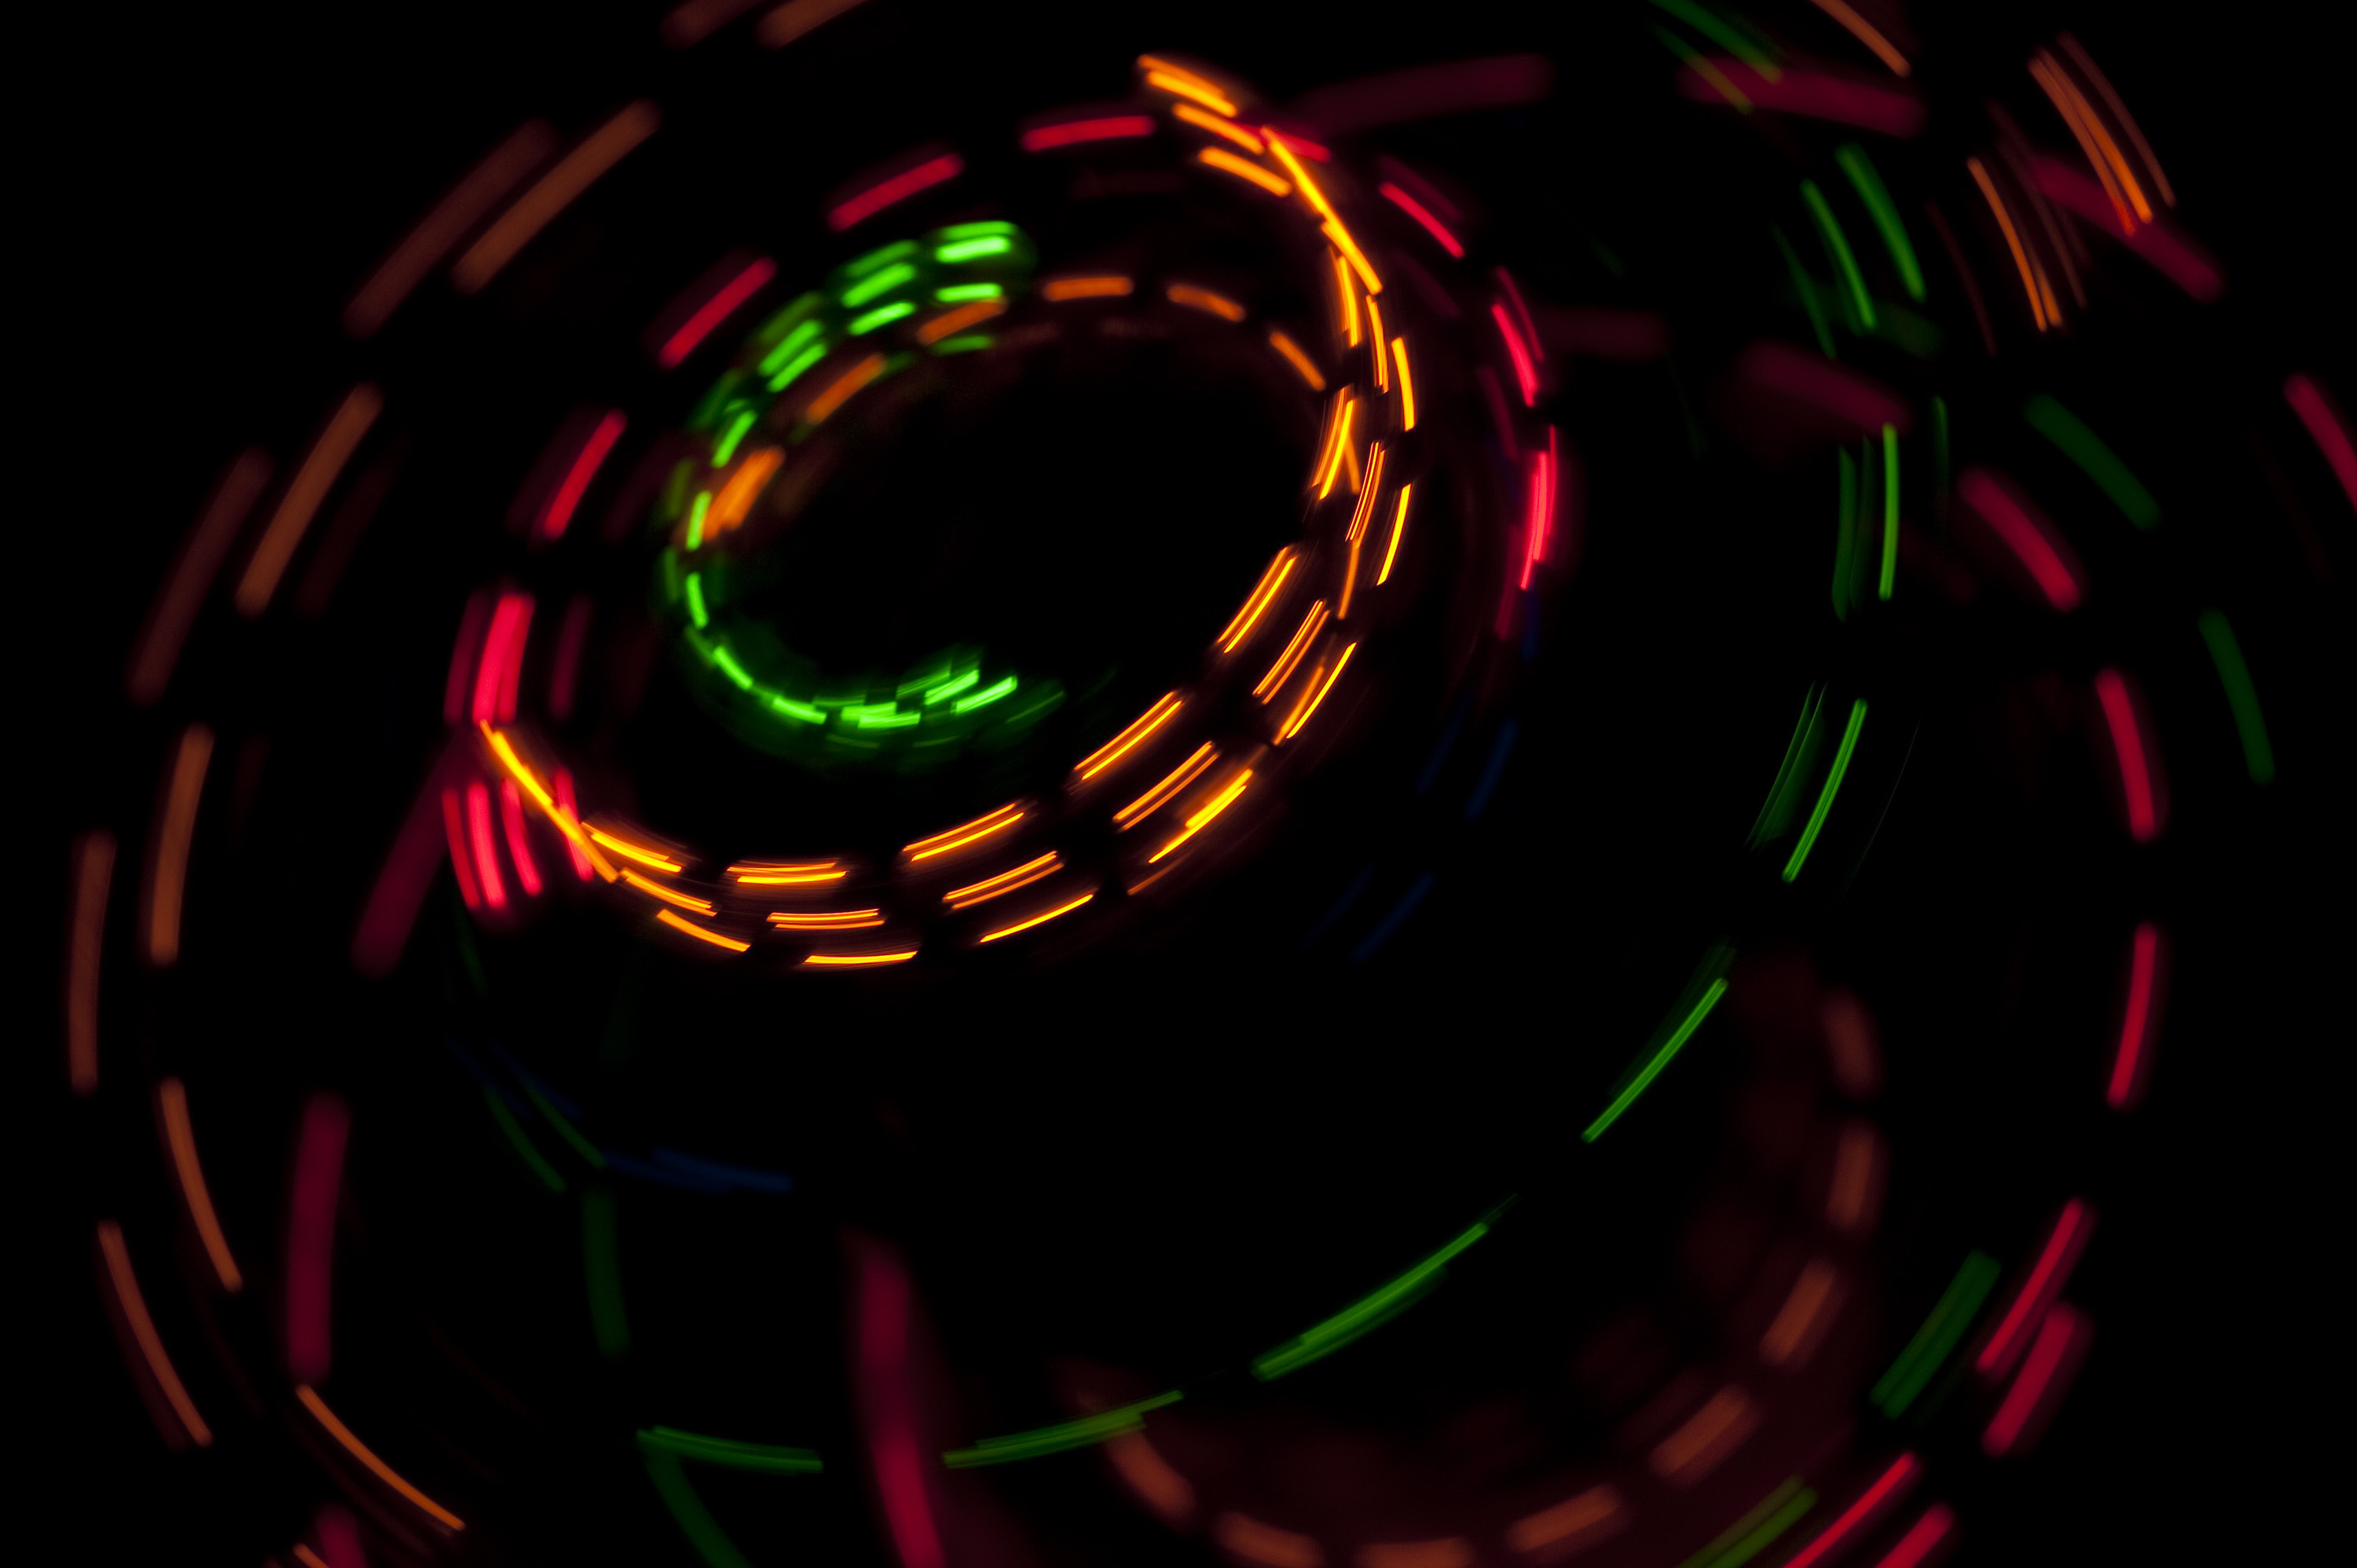 colorful dashed lines of light creating a circular pattern